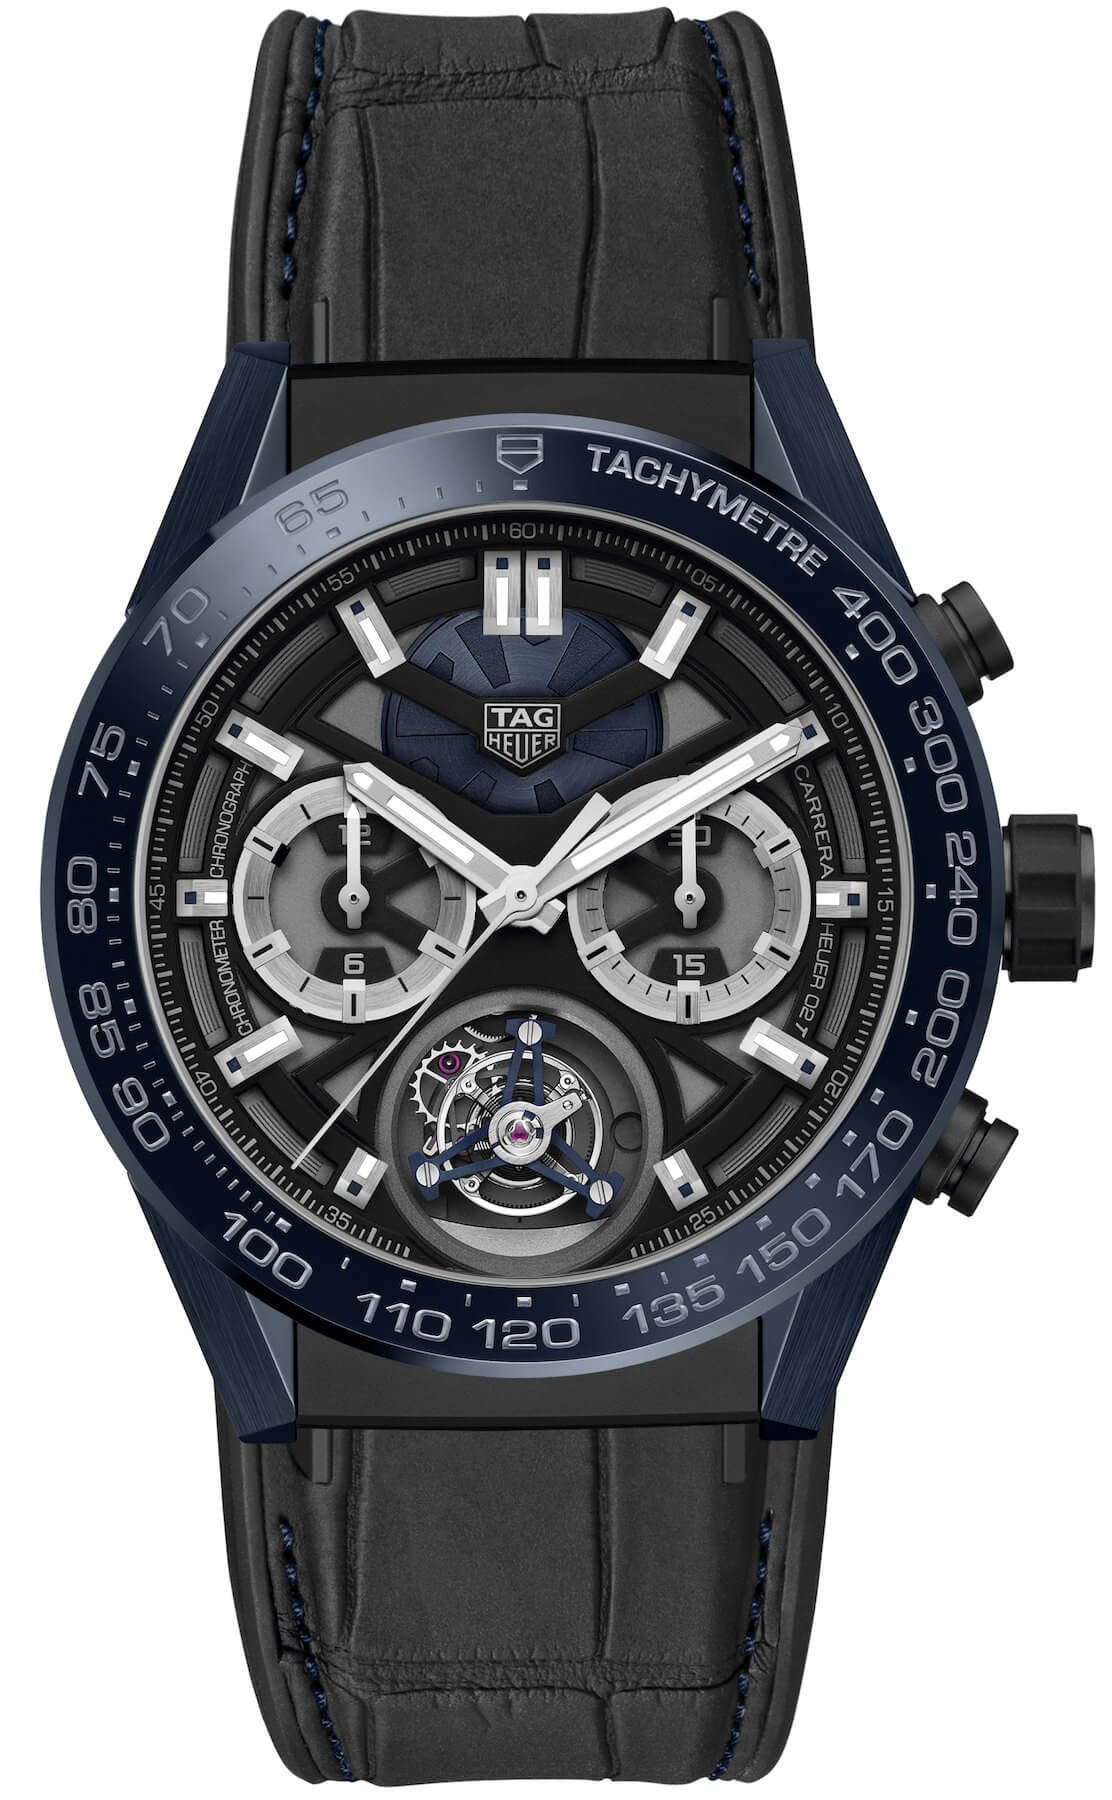 The TAG Heuer Carrera Tete de Vipere Chronograph Tourbillon Chronometer Replica